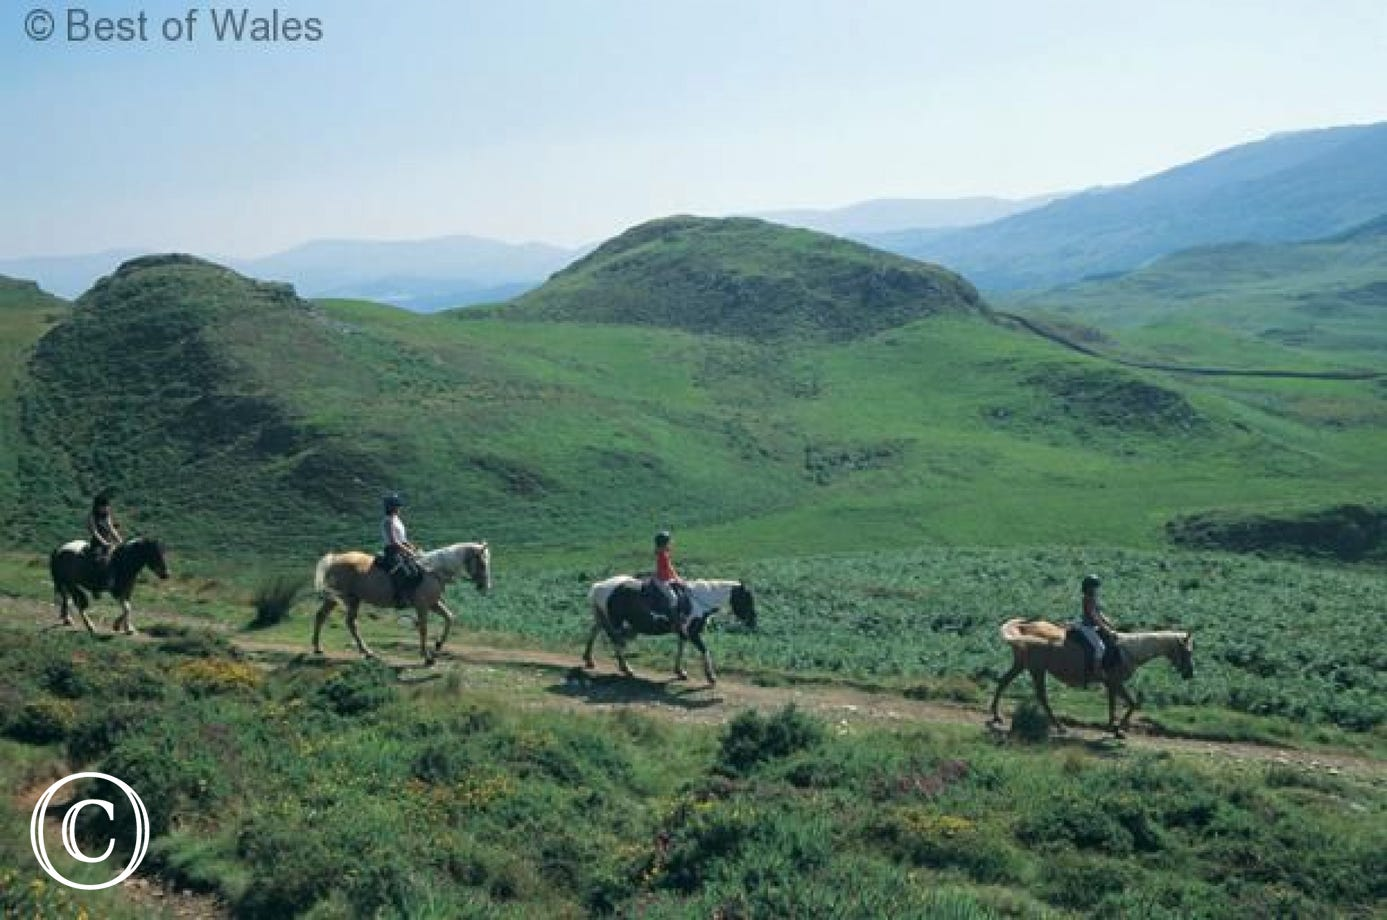 Views of the Mawddach Estuary & Cader Idris off a horse's back